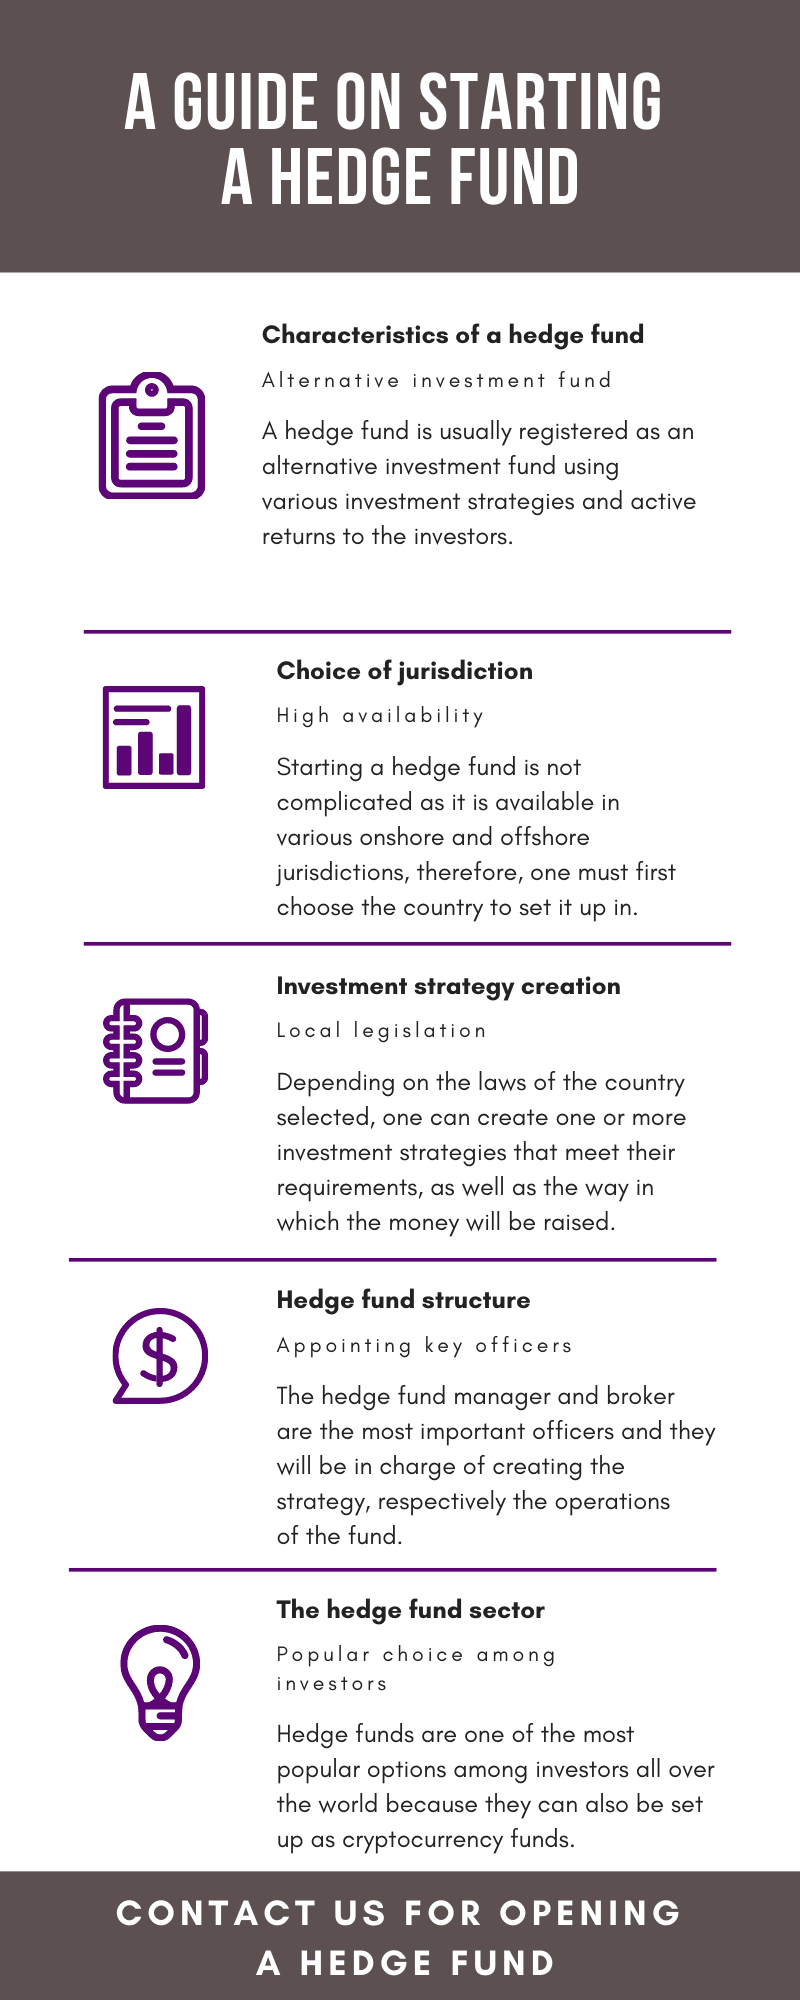 A Guide on Starting a Hedge Fund